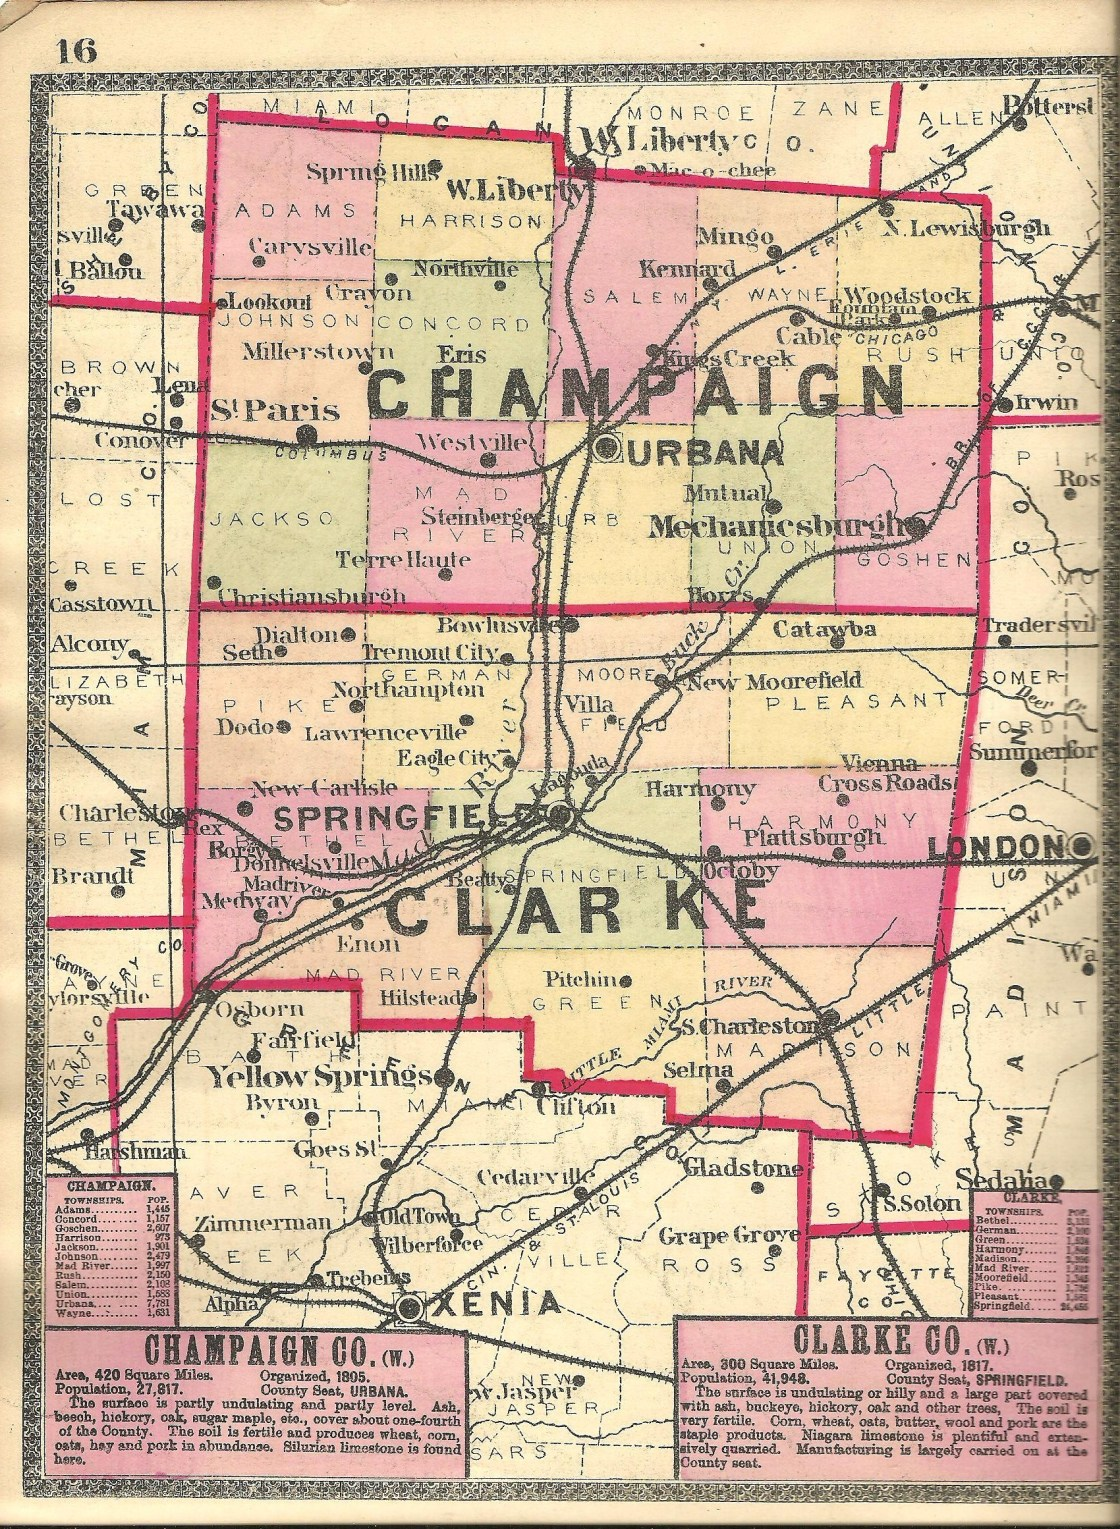 Champaign County – Ohio Ghost Town Exploration Co. on